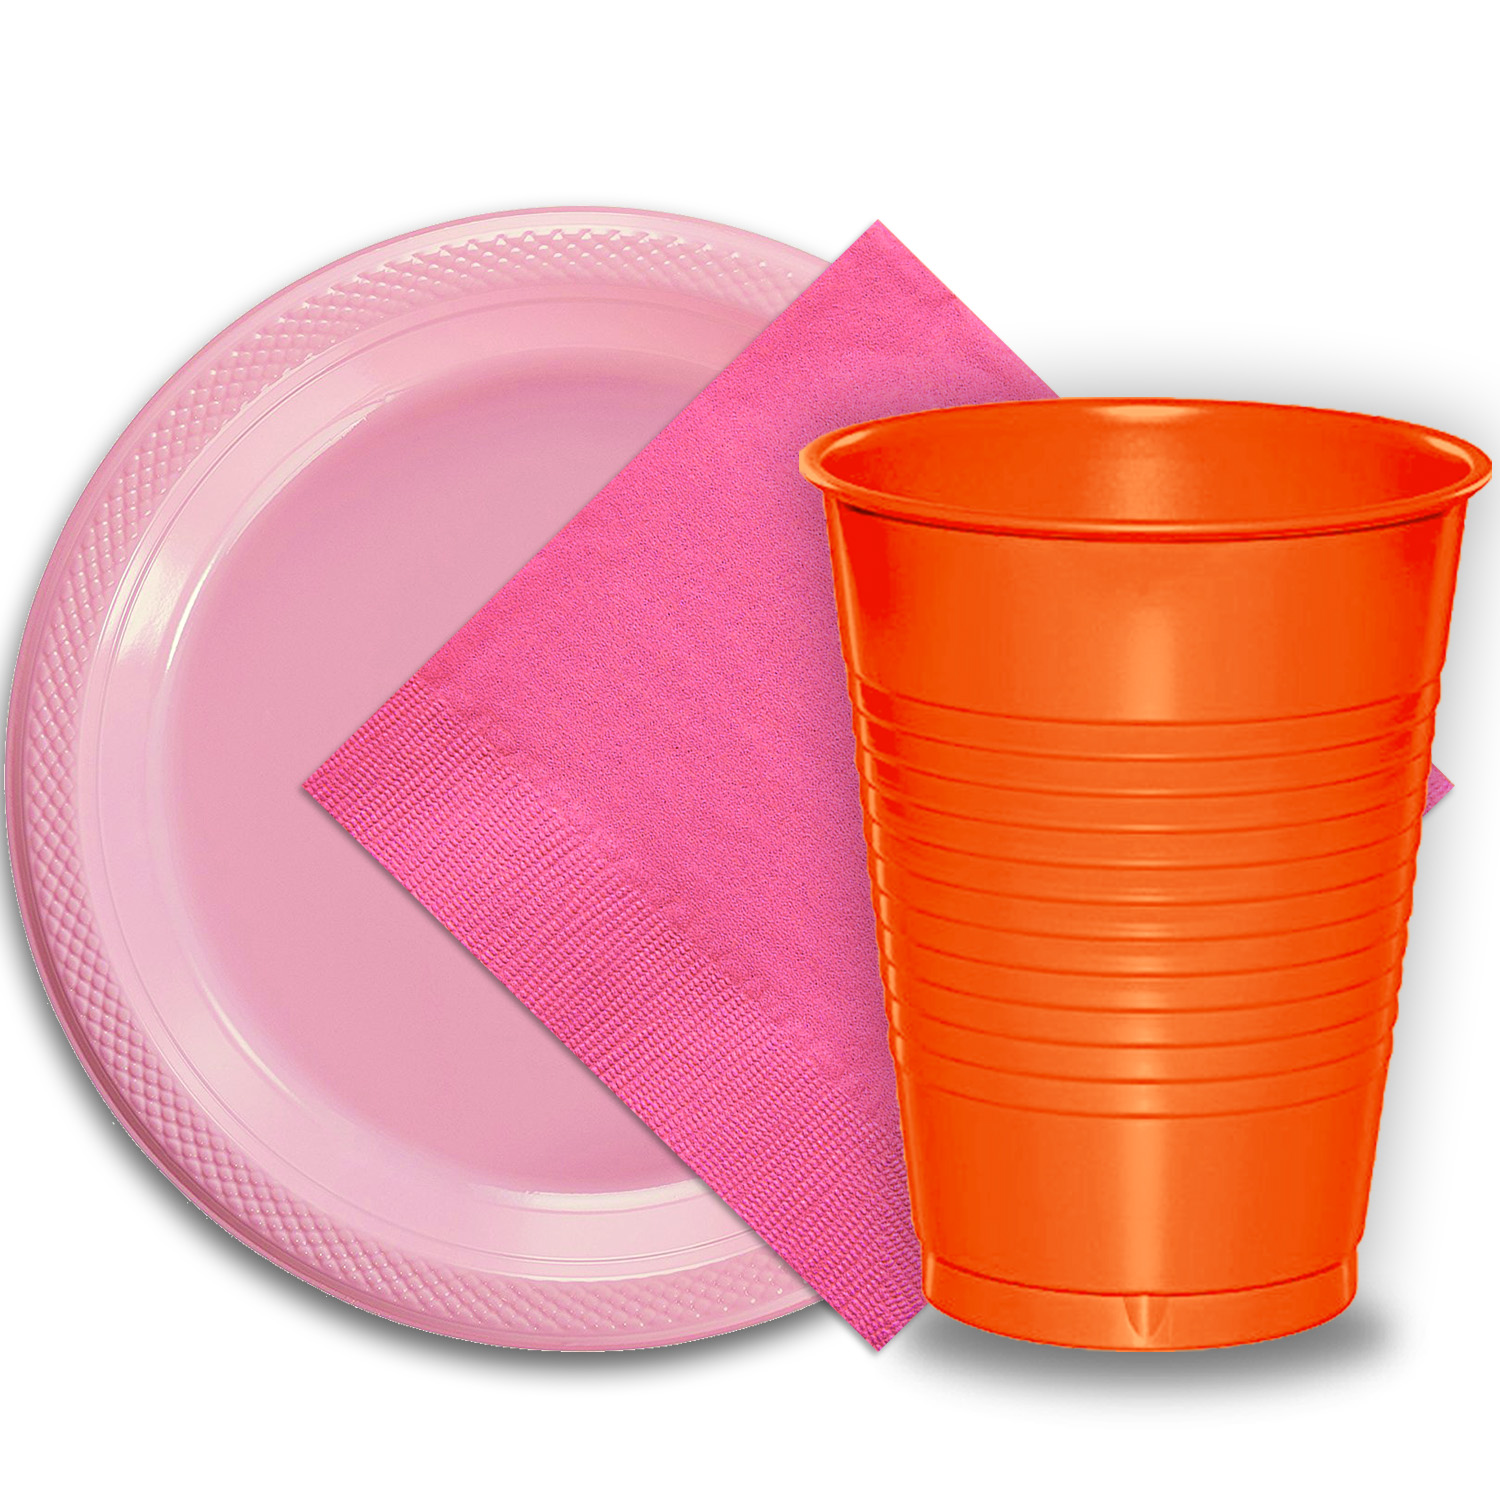 "50 Pink Plastic Plates (9""), 50 Orange Plastic Cups (12 oz.), and 50 Hot Pink Paper Napkins, Dazzelling Colored Disposable Party Supplies Tableware Set for Fifty Guests."